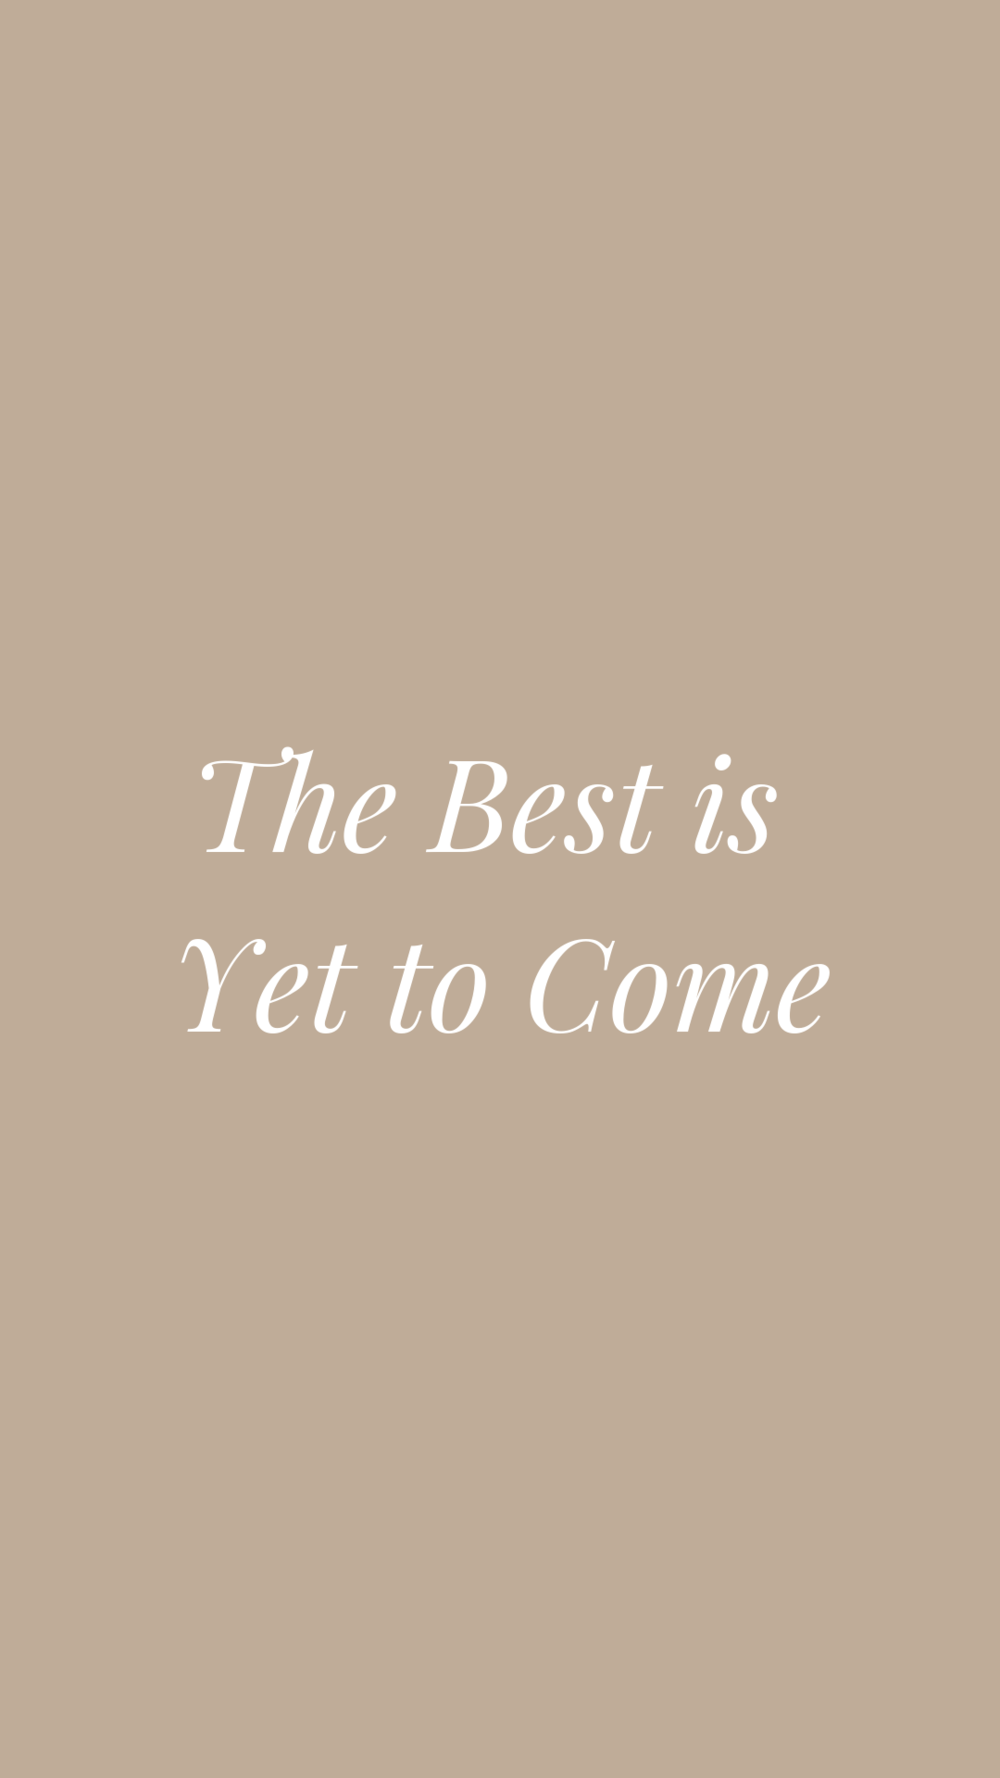 The Best is Yet to Come   Empowering Quotes for Your Phone Screen Background | Miranda Schroeder Blog | www.mirandaschroeder.com